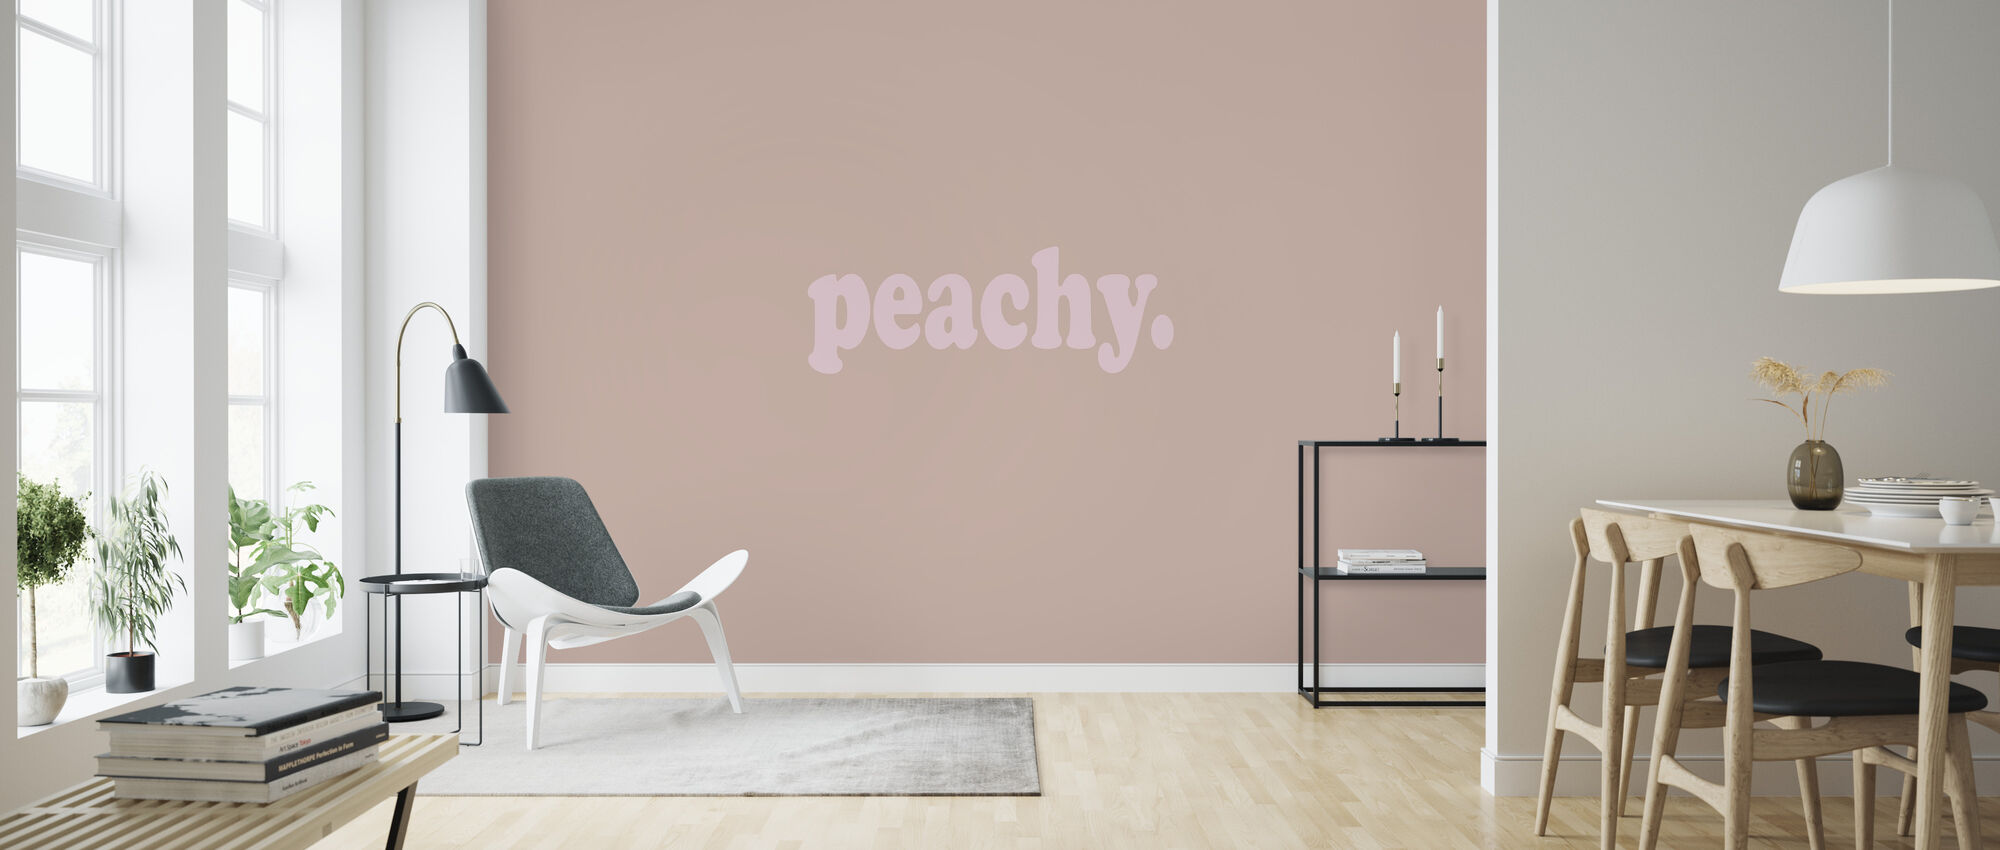 Peachy - Wallpaper - Living Room